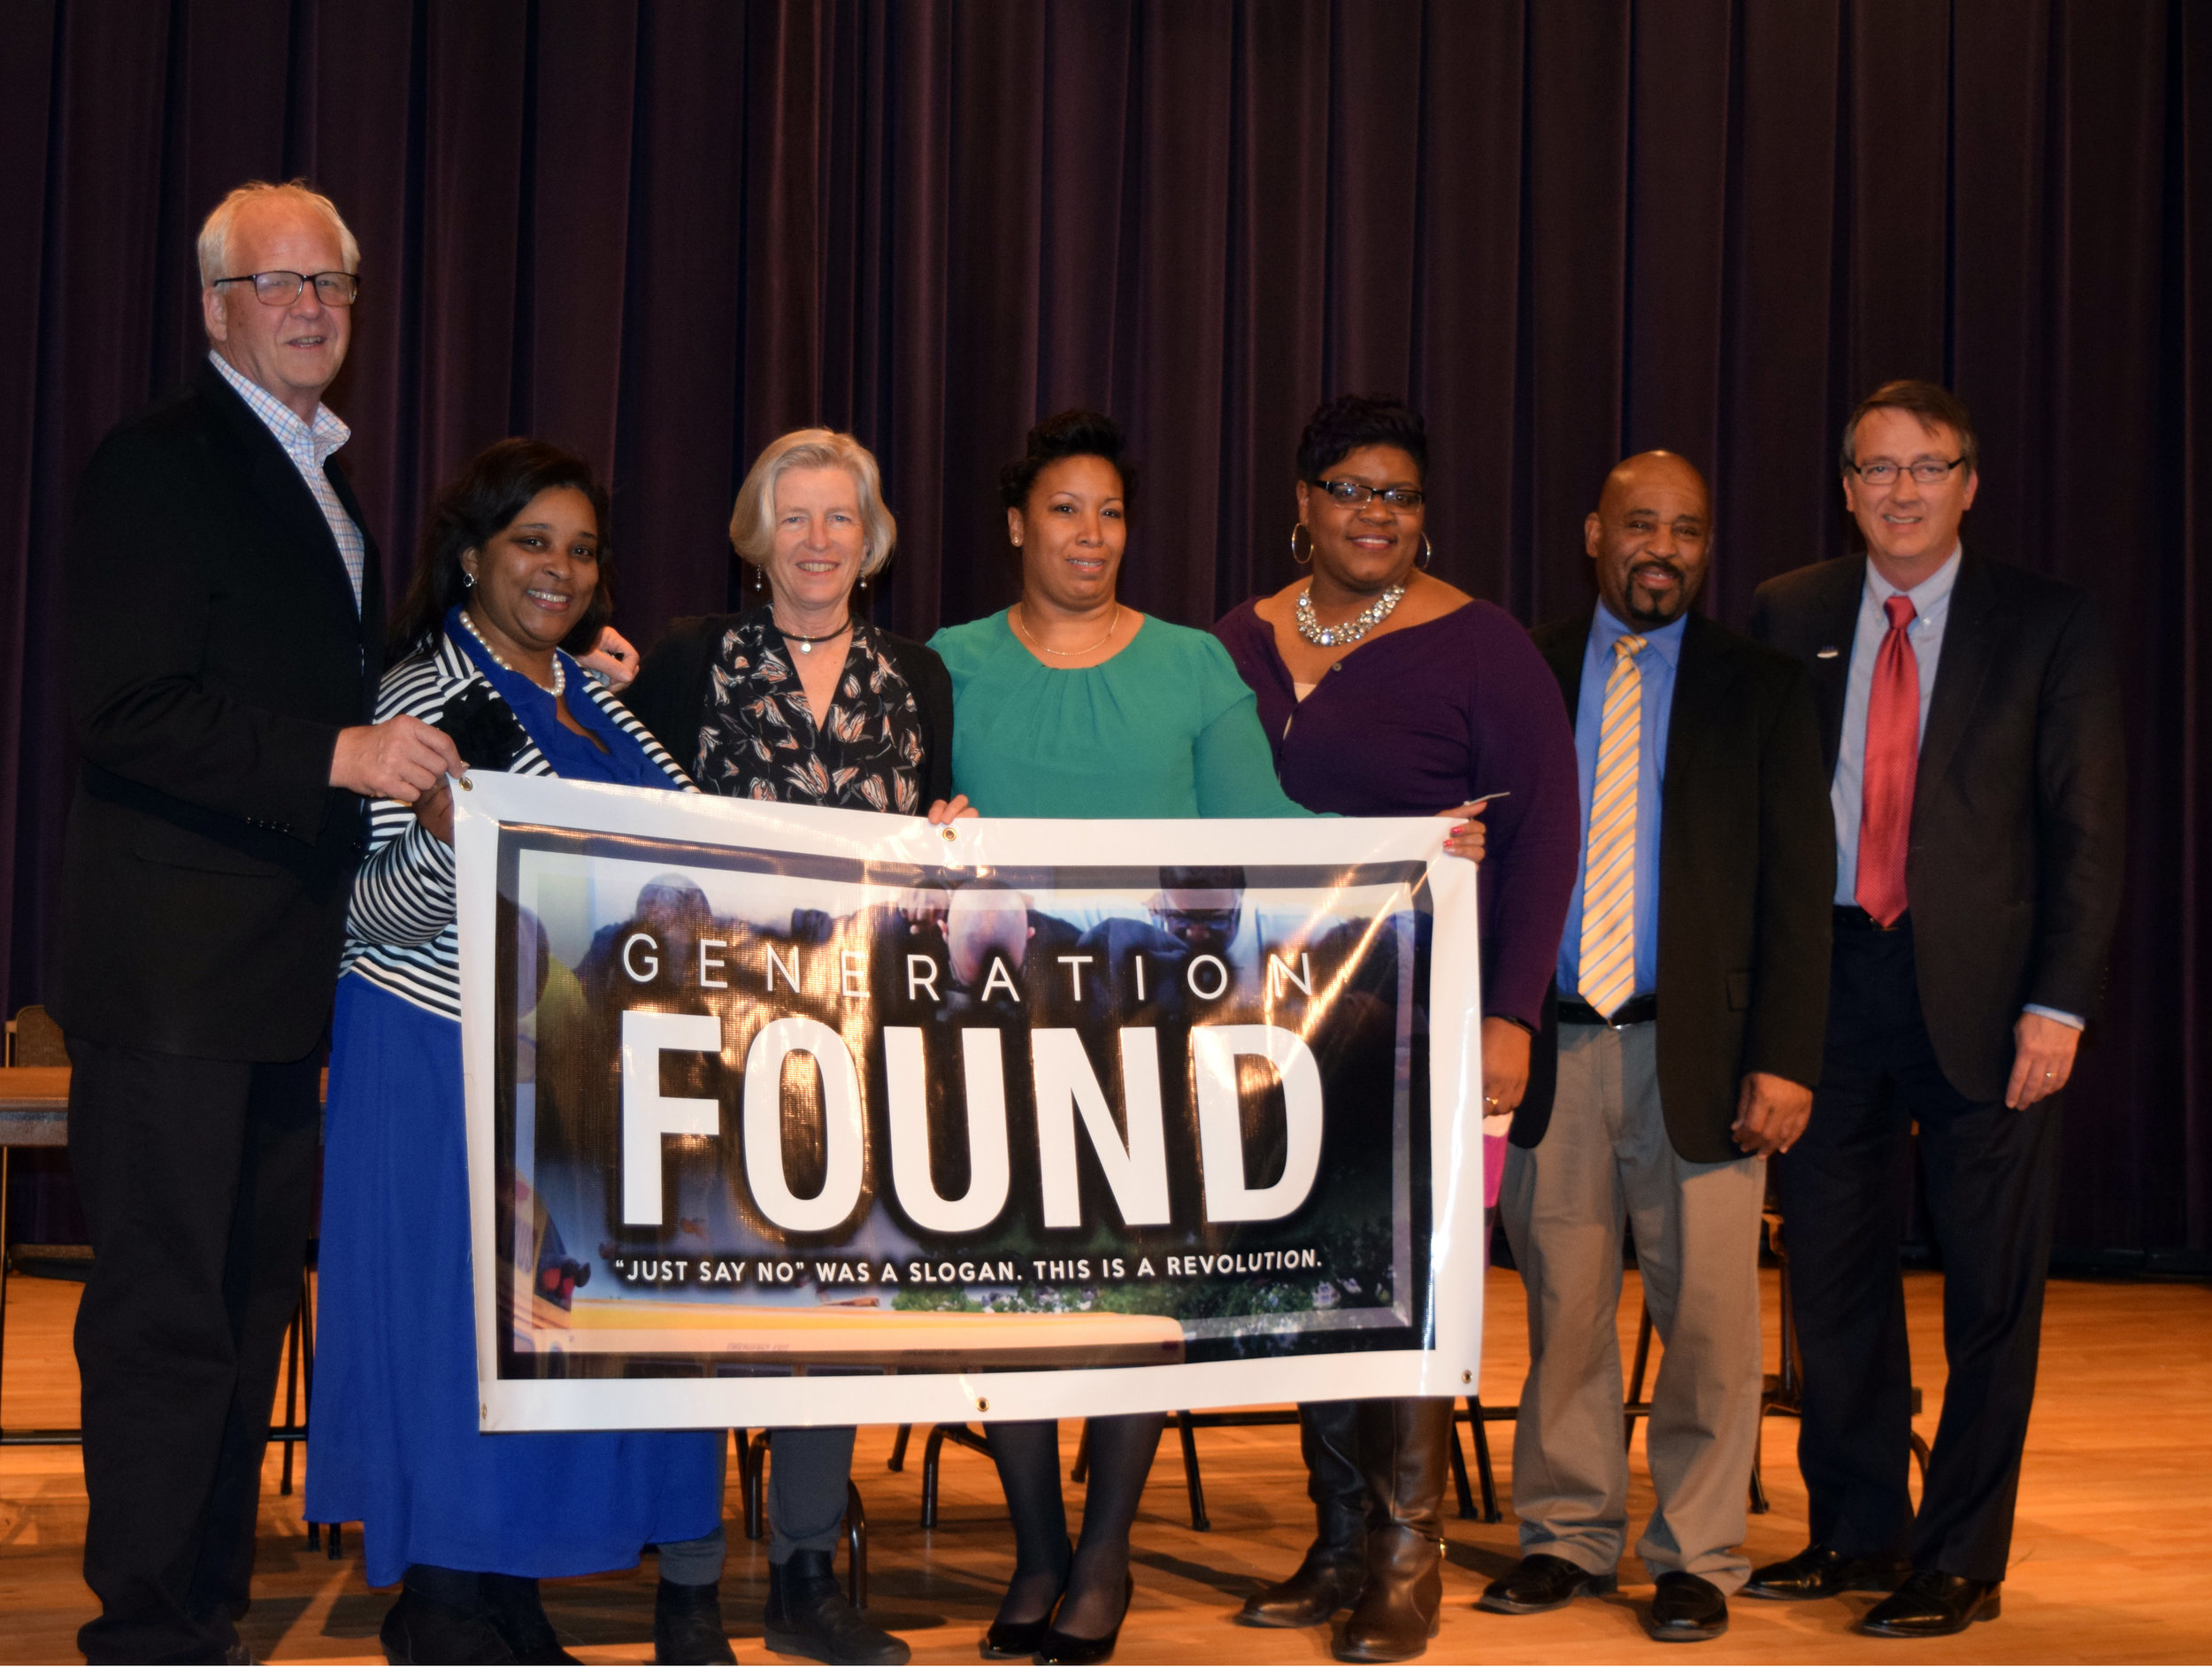 """Lynchburg City Schools and the UP Foundation presented """"Generation Found"""" on March 9, 2017. From left to right, Lewis Johnston, Daishia Womack, Ann Bond Gentry, LaTonya Brown, Ethel Reeves, Dr. James Stewart and Dr. Scott Brabrand."""